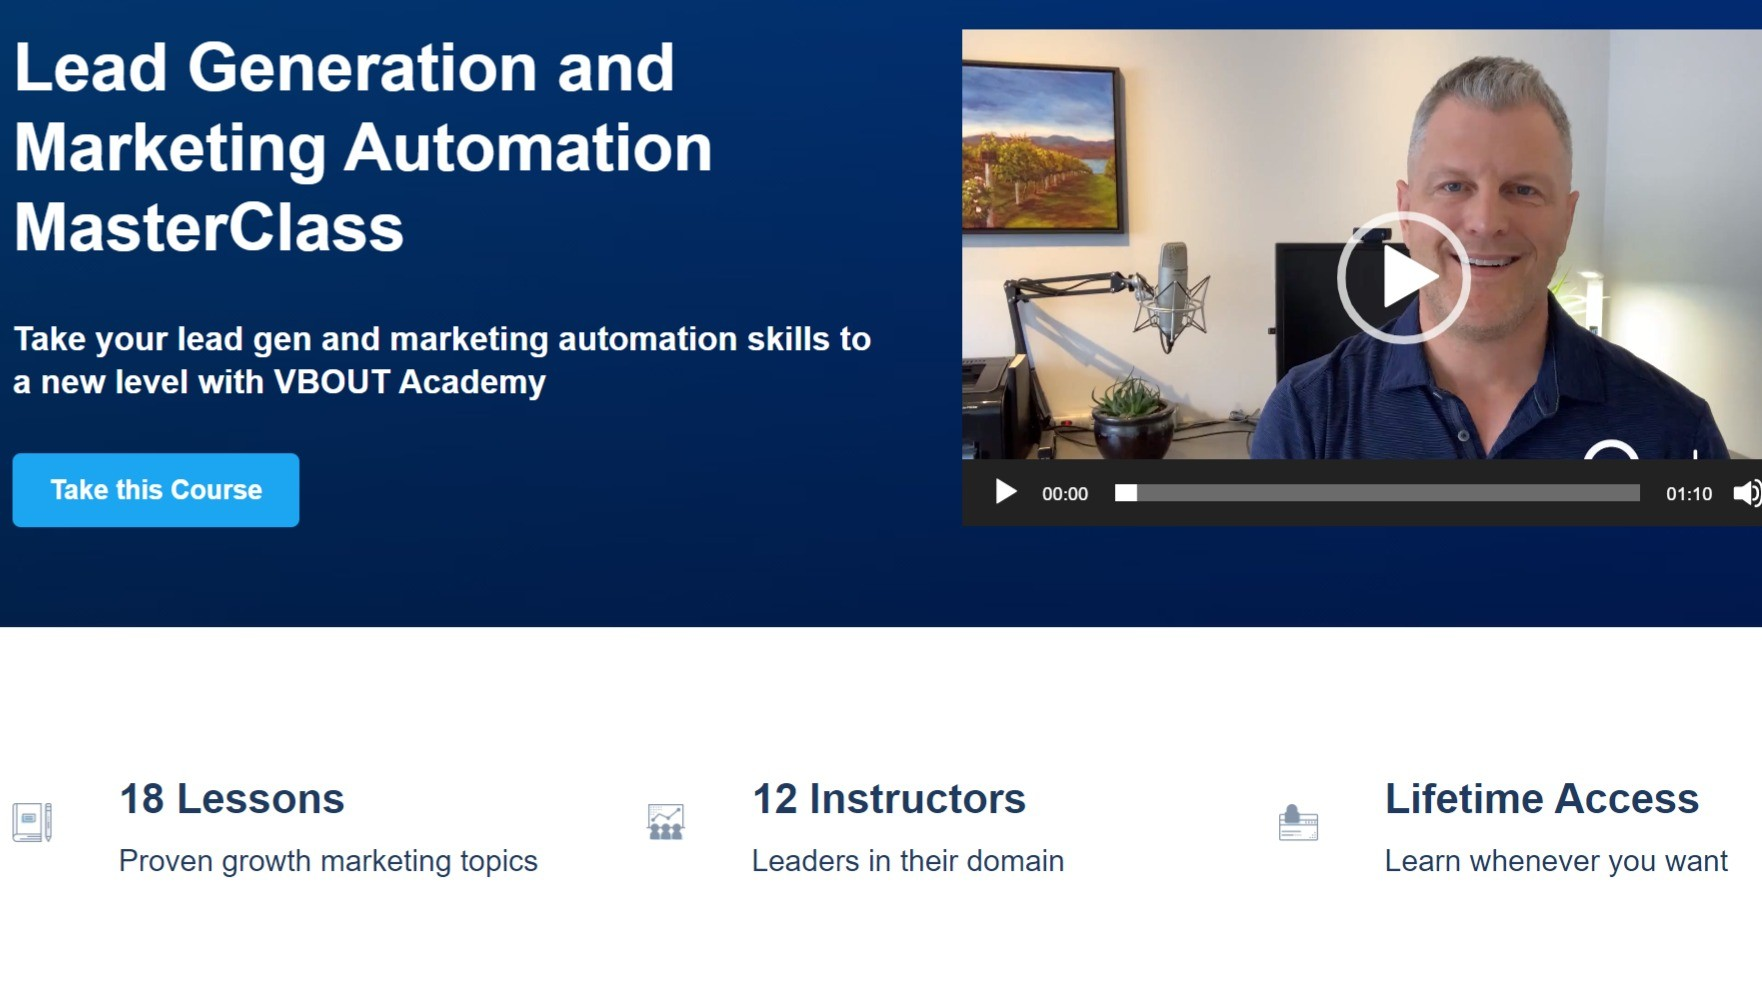 AppSumo Deal for Lead Generation and Marketing Automation Masterclass